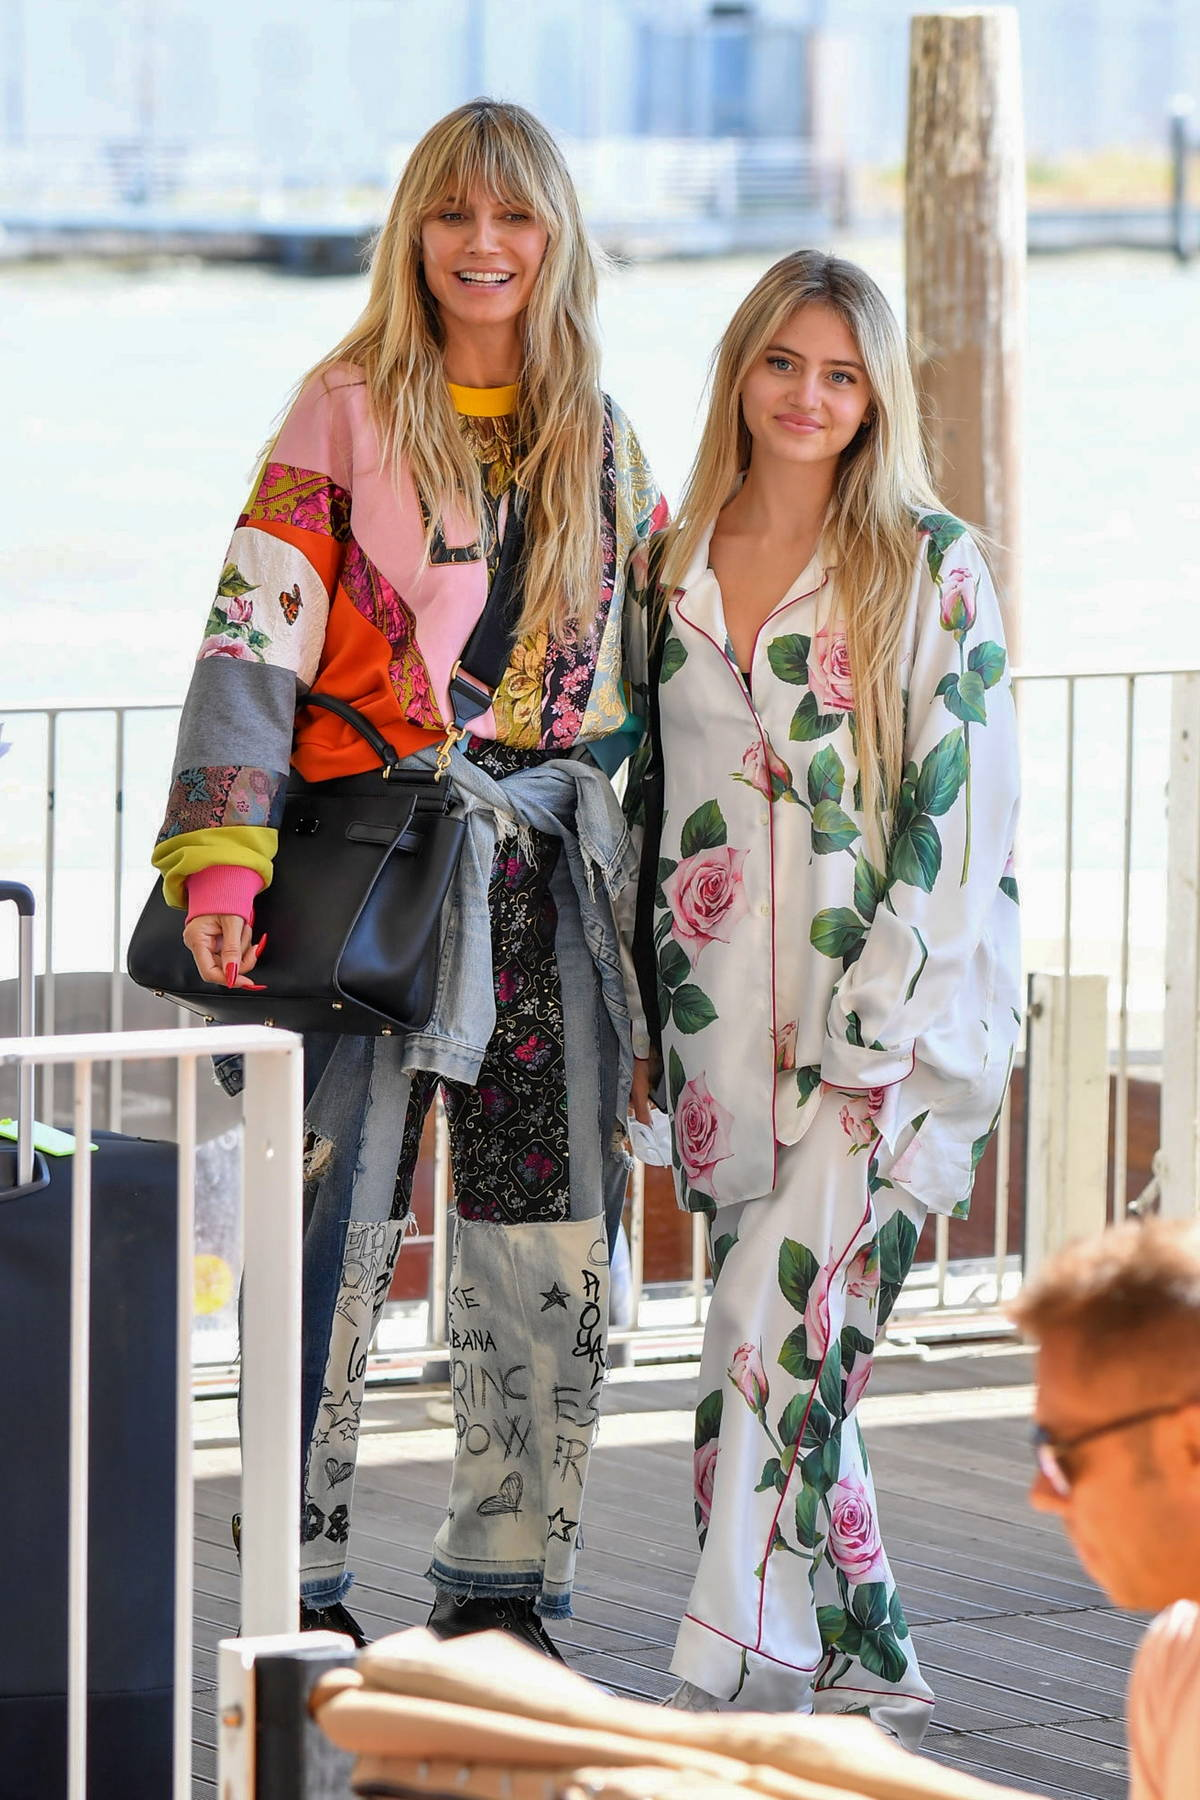 Heidi Klum and Leni Klum look stylish while arriving ahead of a Dolce and Gabbana event in Venice, Italy